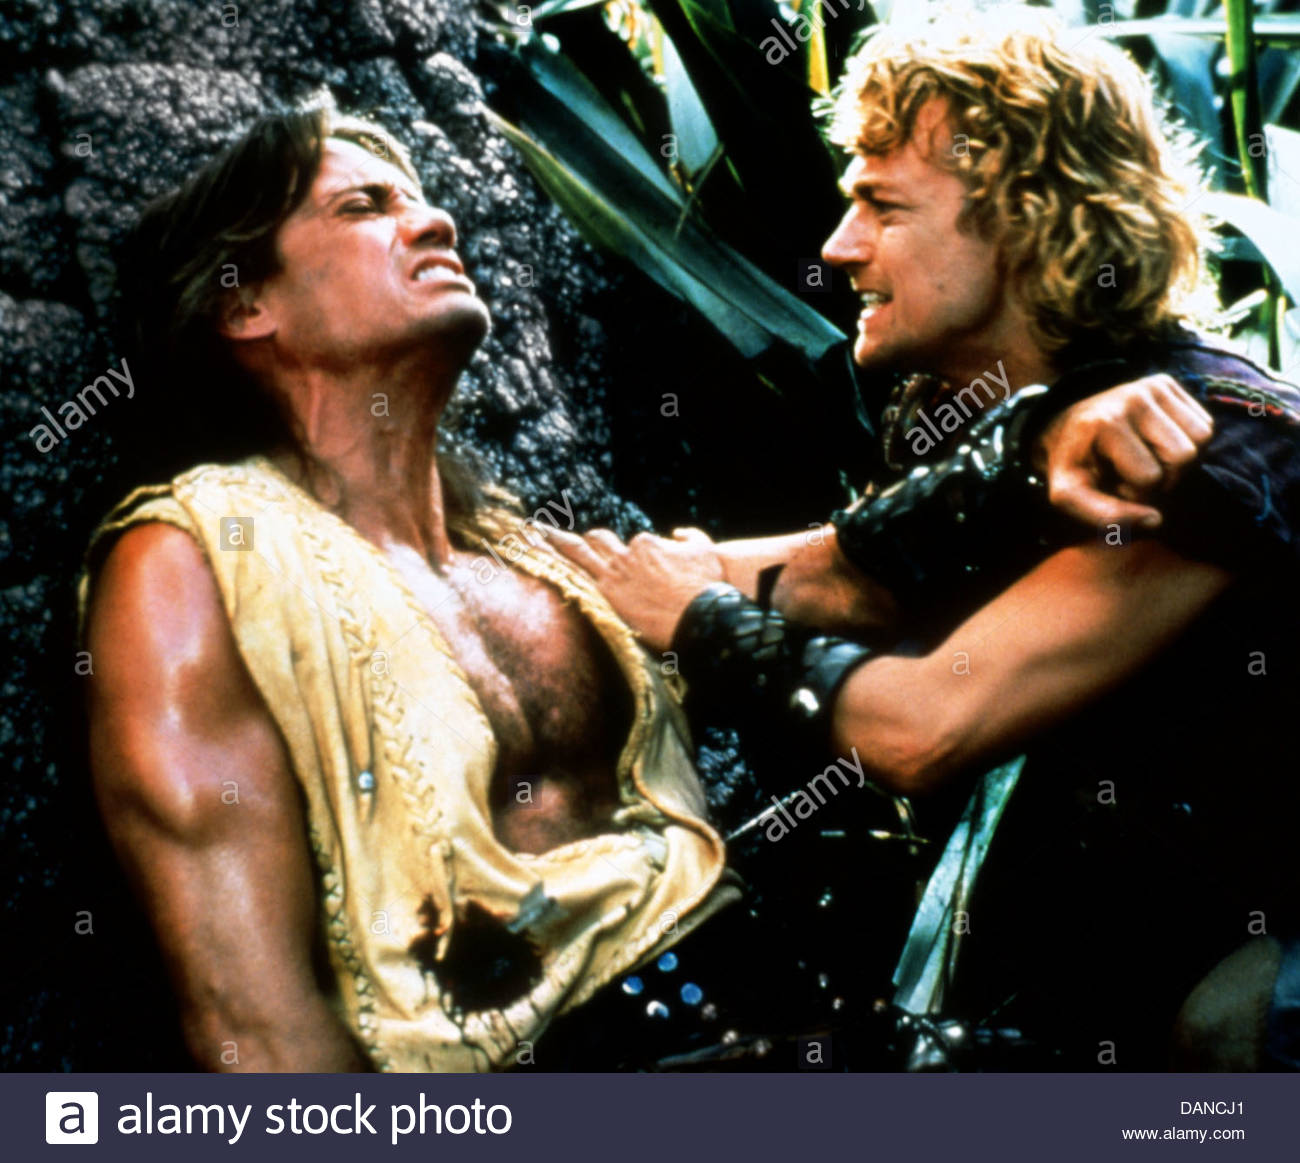 HERKULES DIE LEGENDÄREN REISEN (TV) (1994)-KEVIN SORBO, HTLJ 044 MOVIESTORE COLLECTION LTD. Stockbild